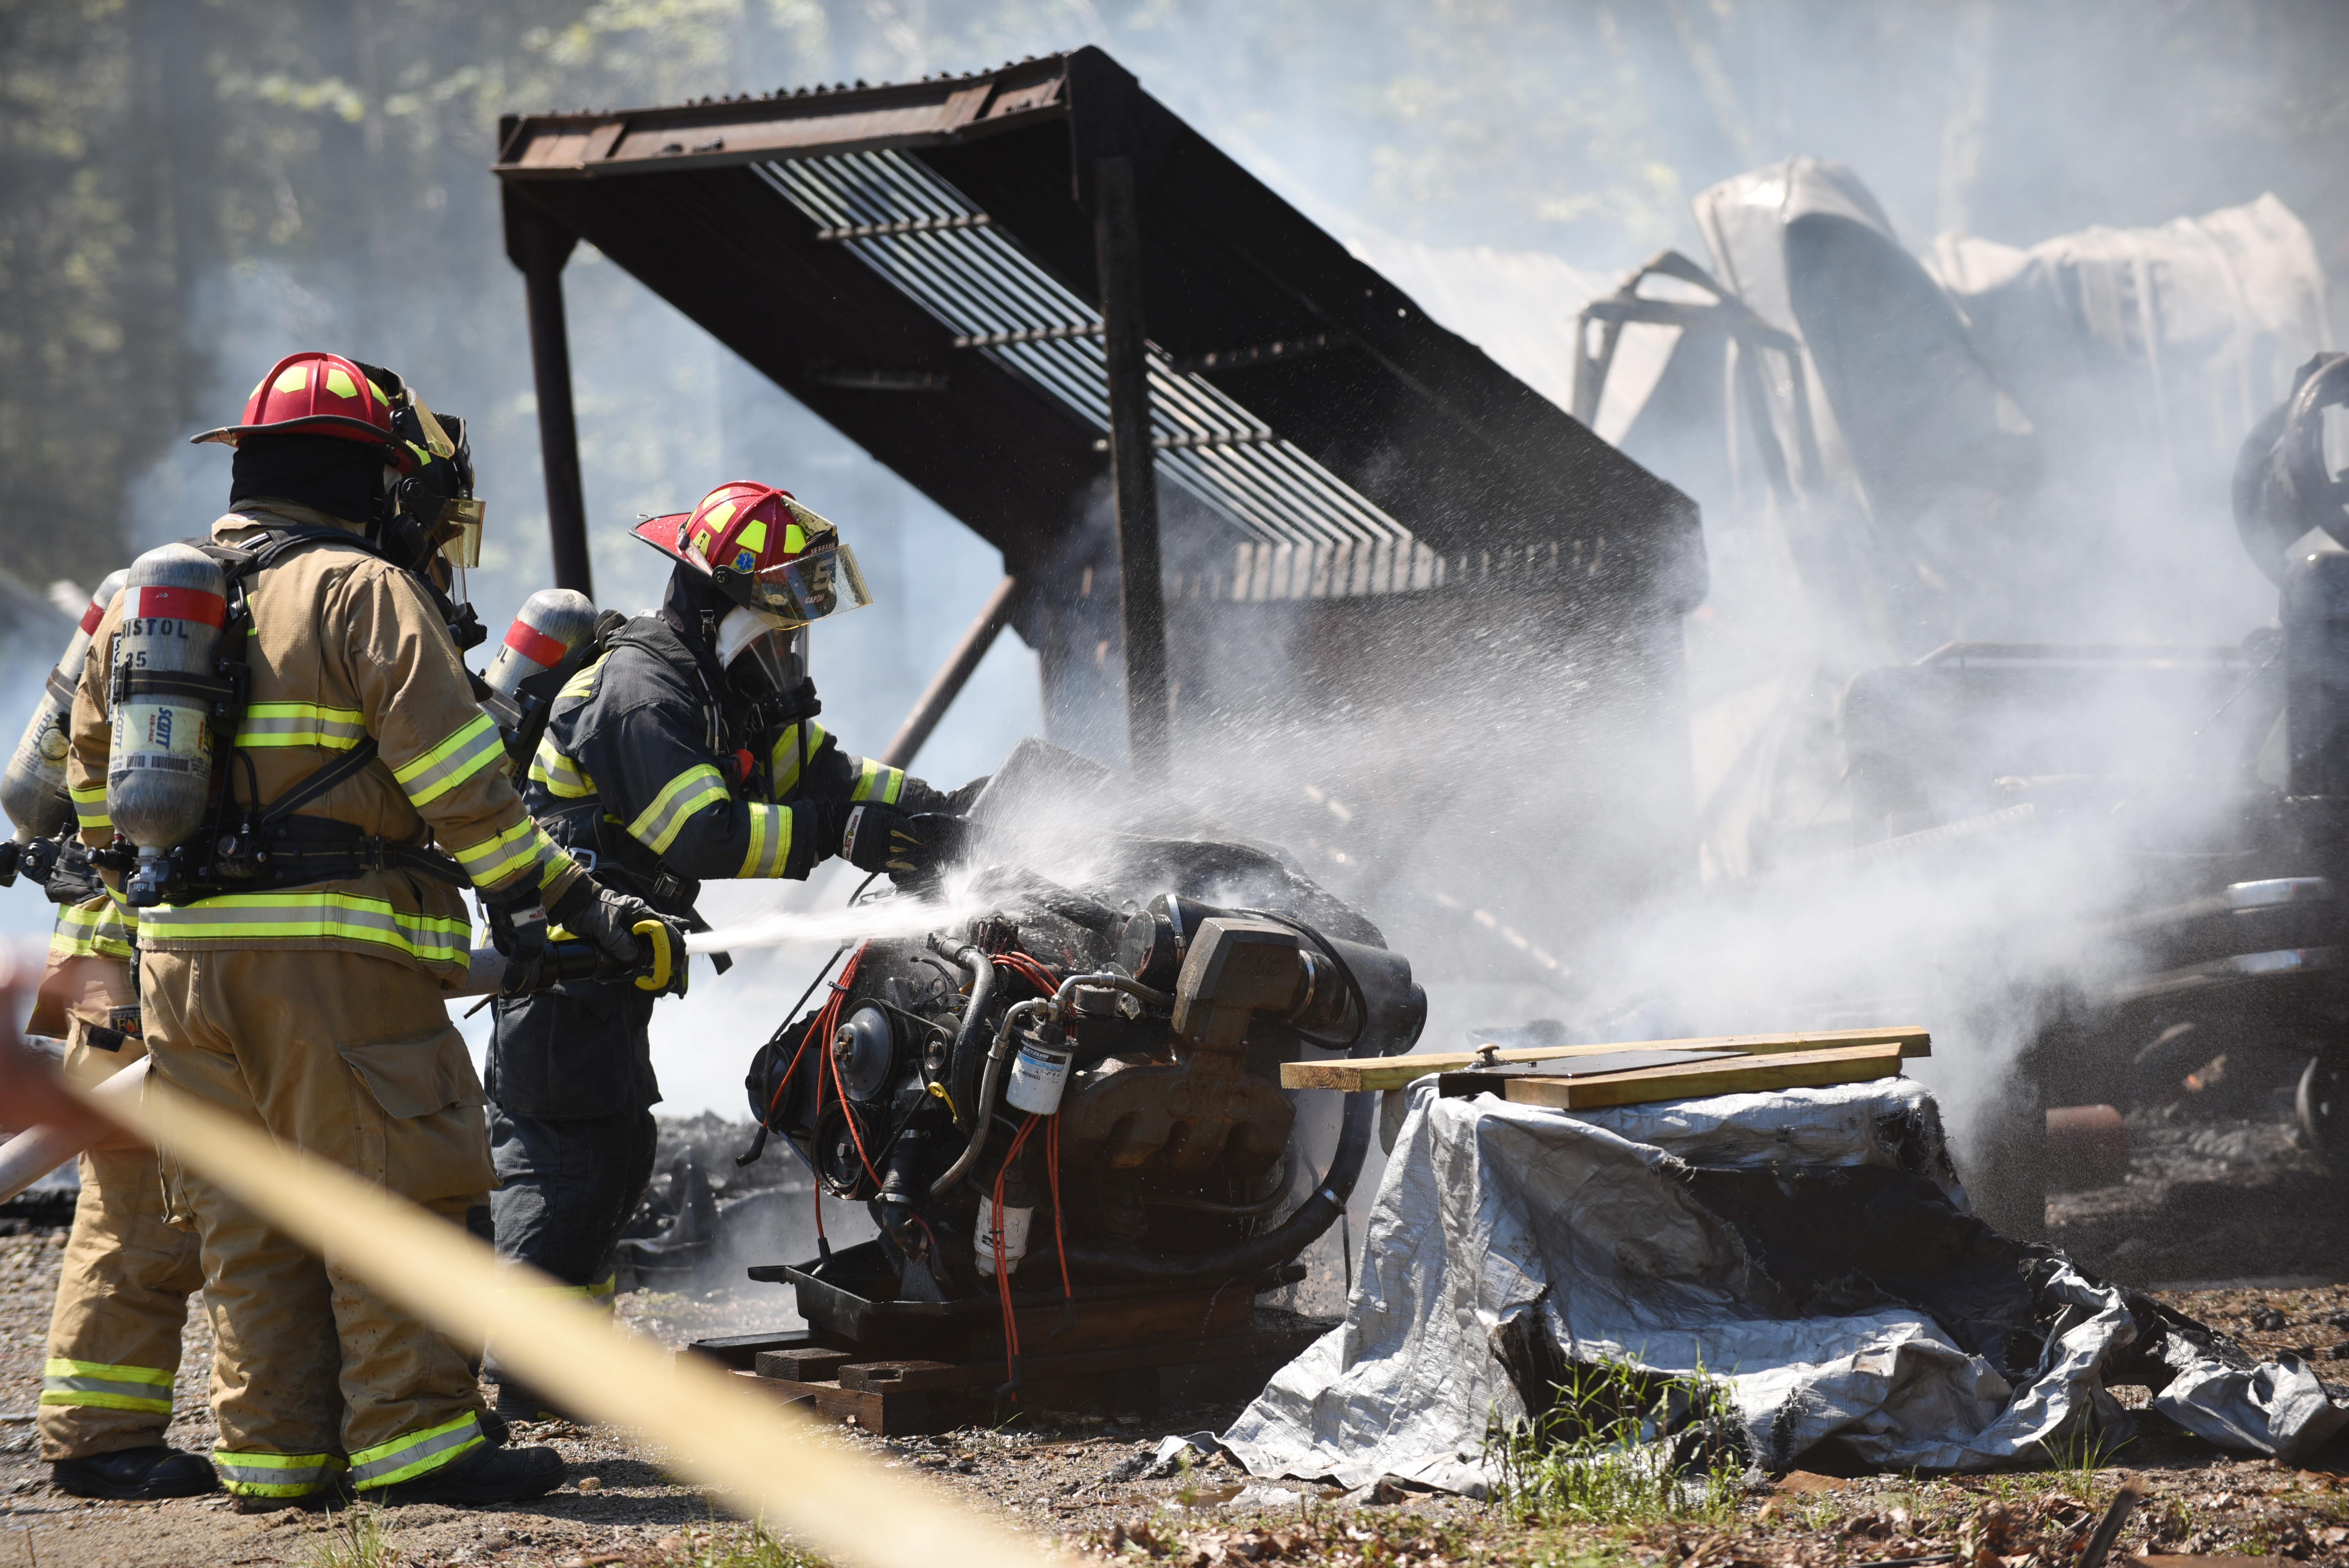 Firefighters spray a piece of equipment at a workshop fire on Wiley Woods Way in Walpole on Monday, May 21. (Jessica Picard photo)